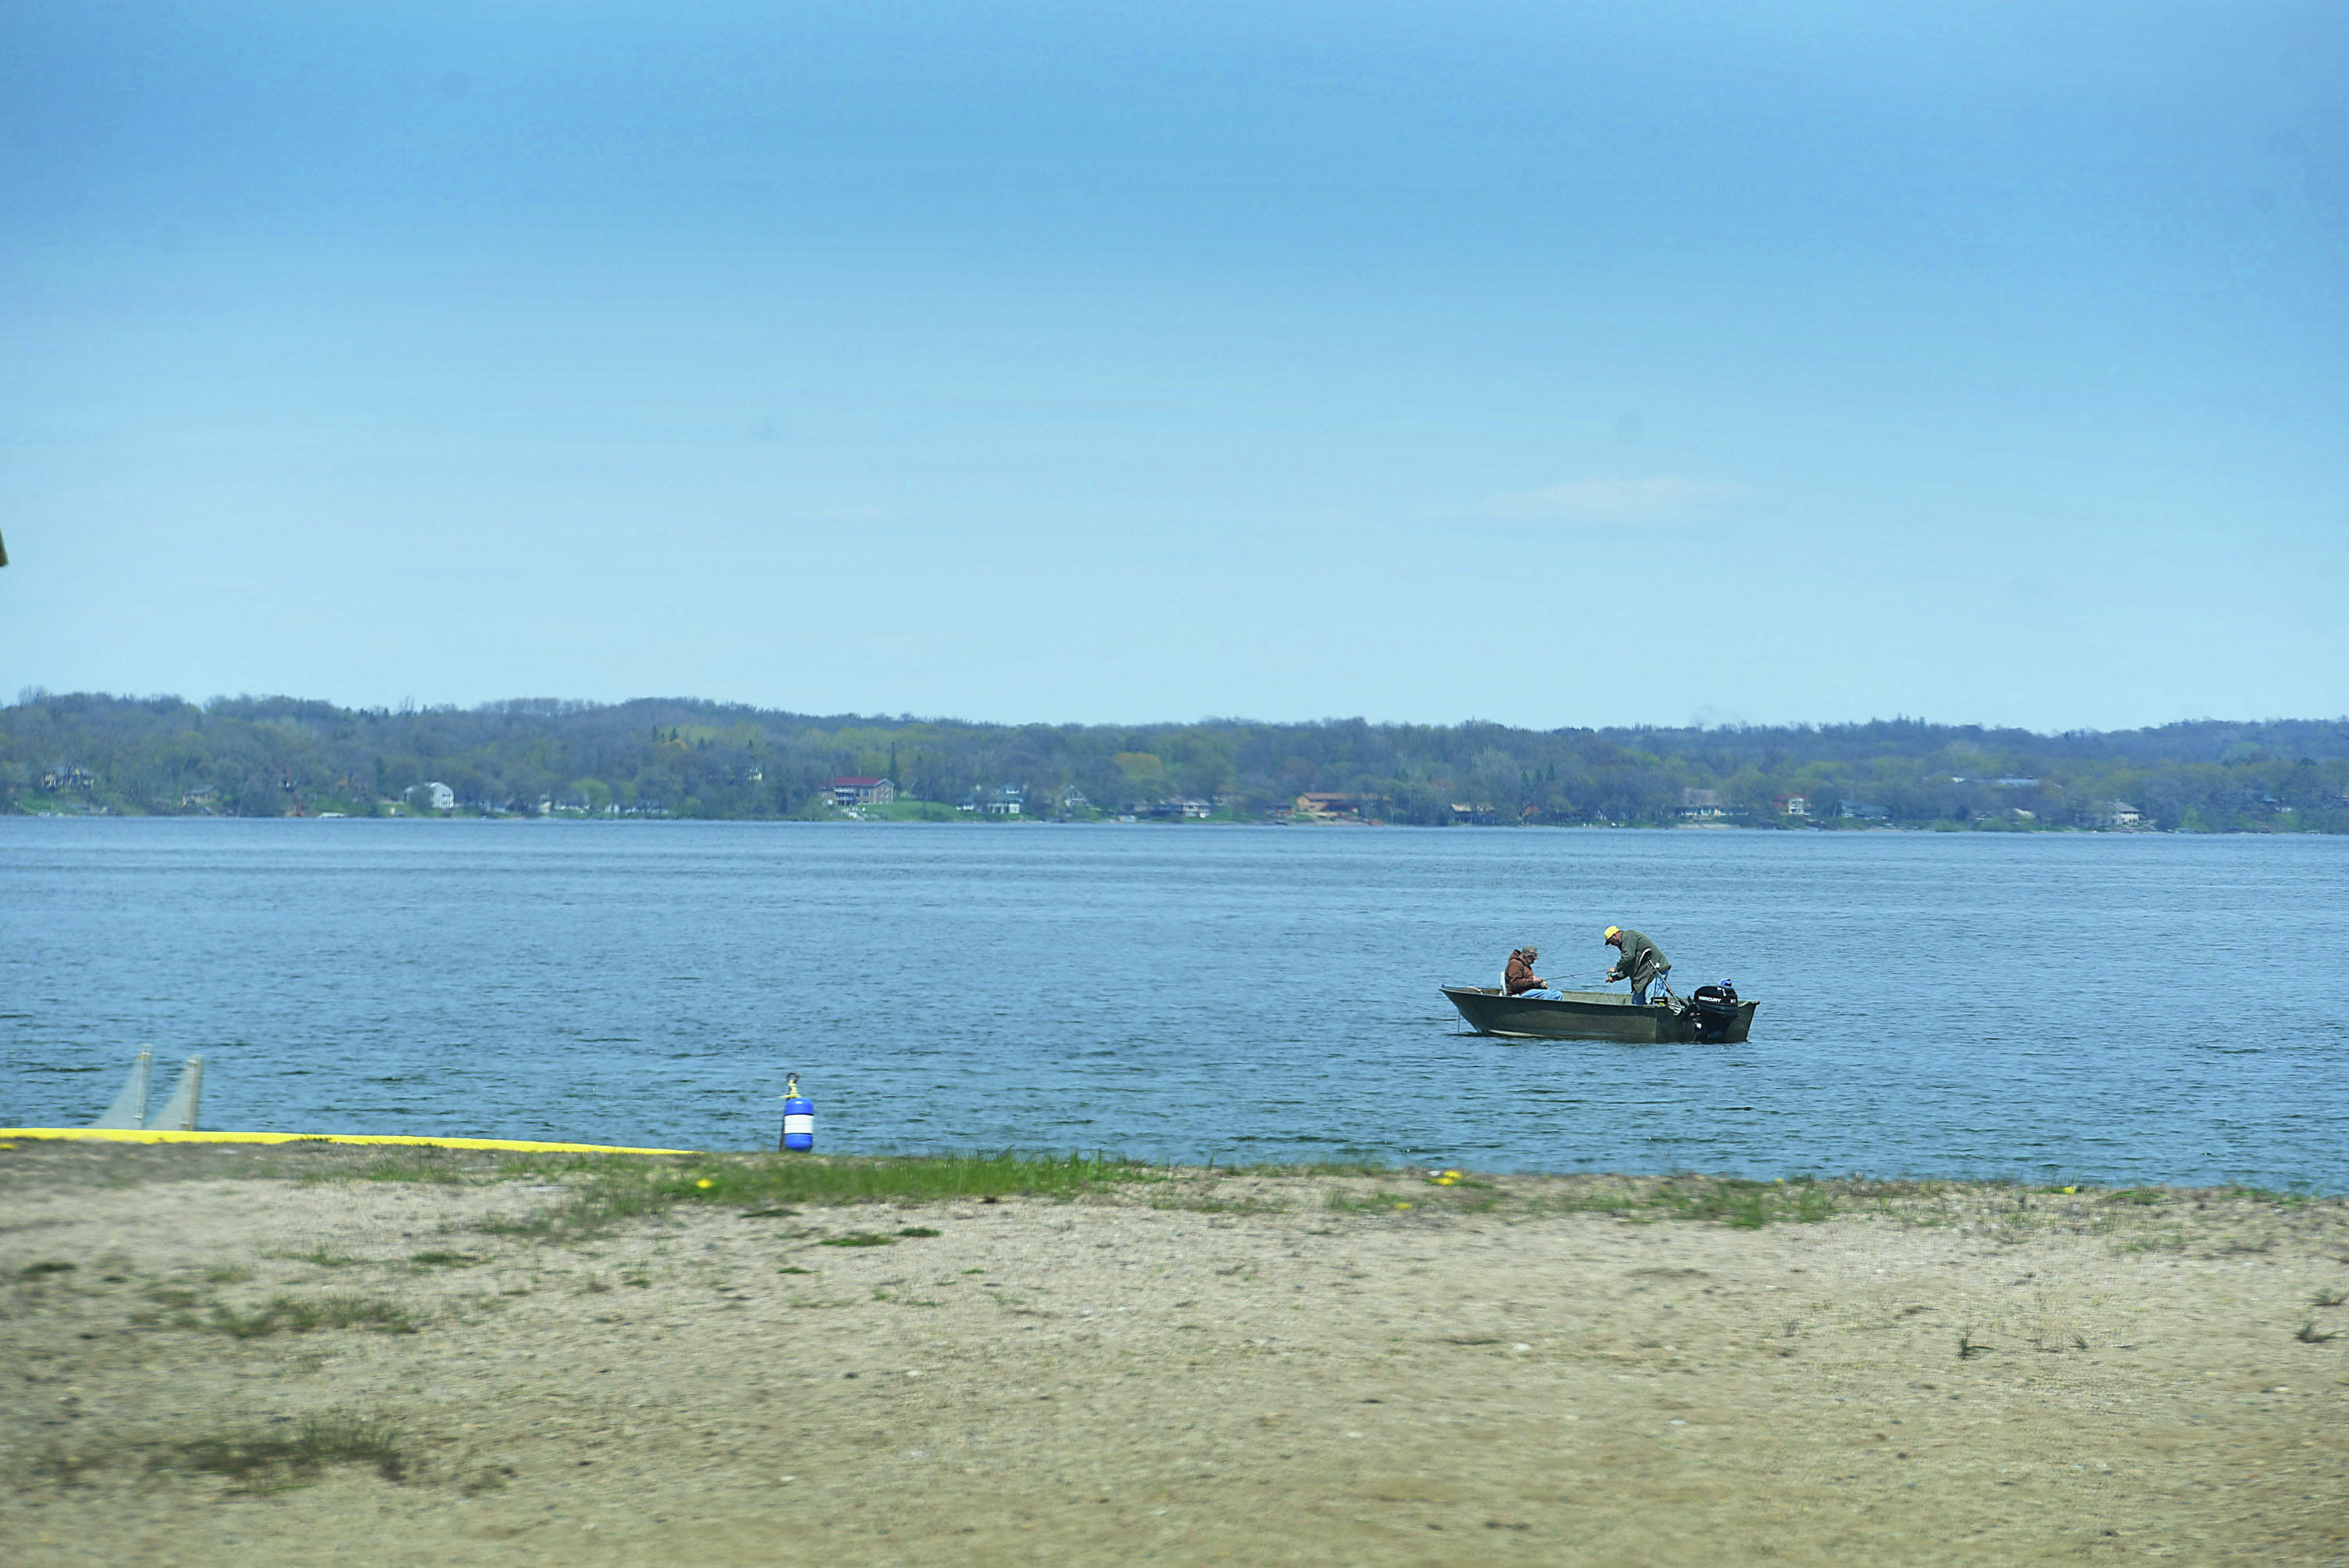 Green Lake to host 2018 governor's fishing opener